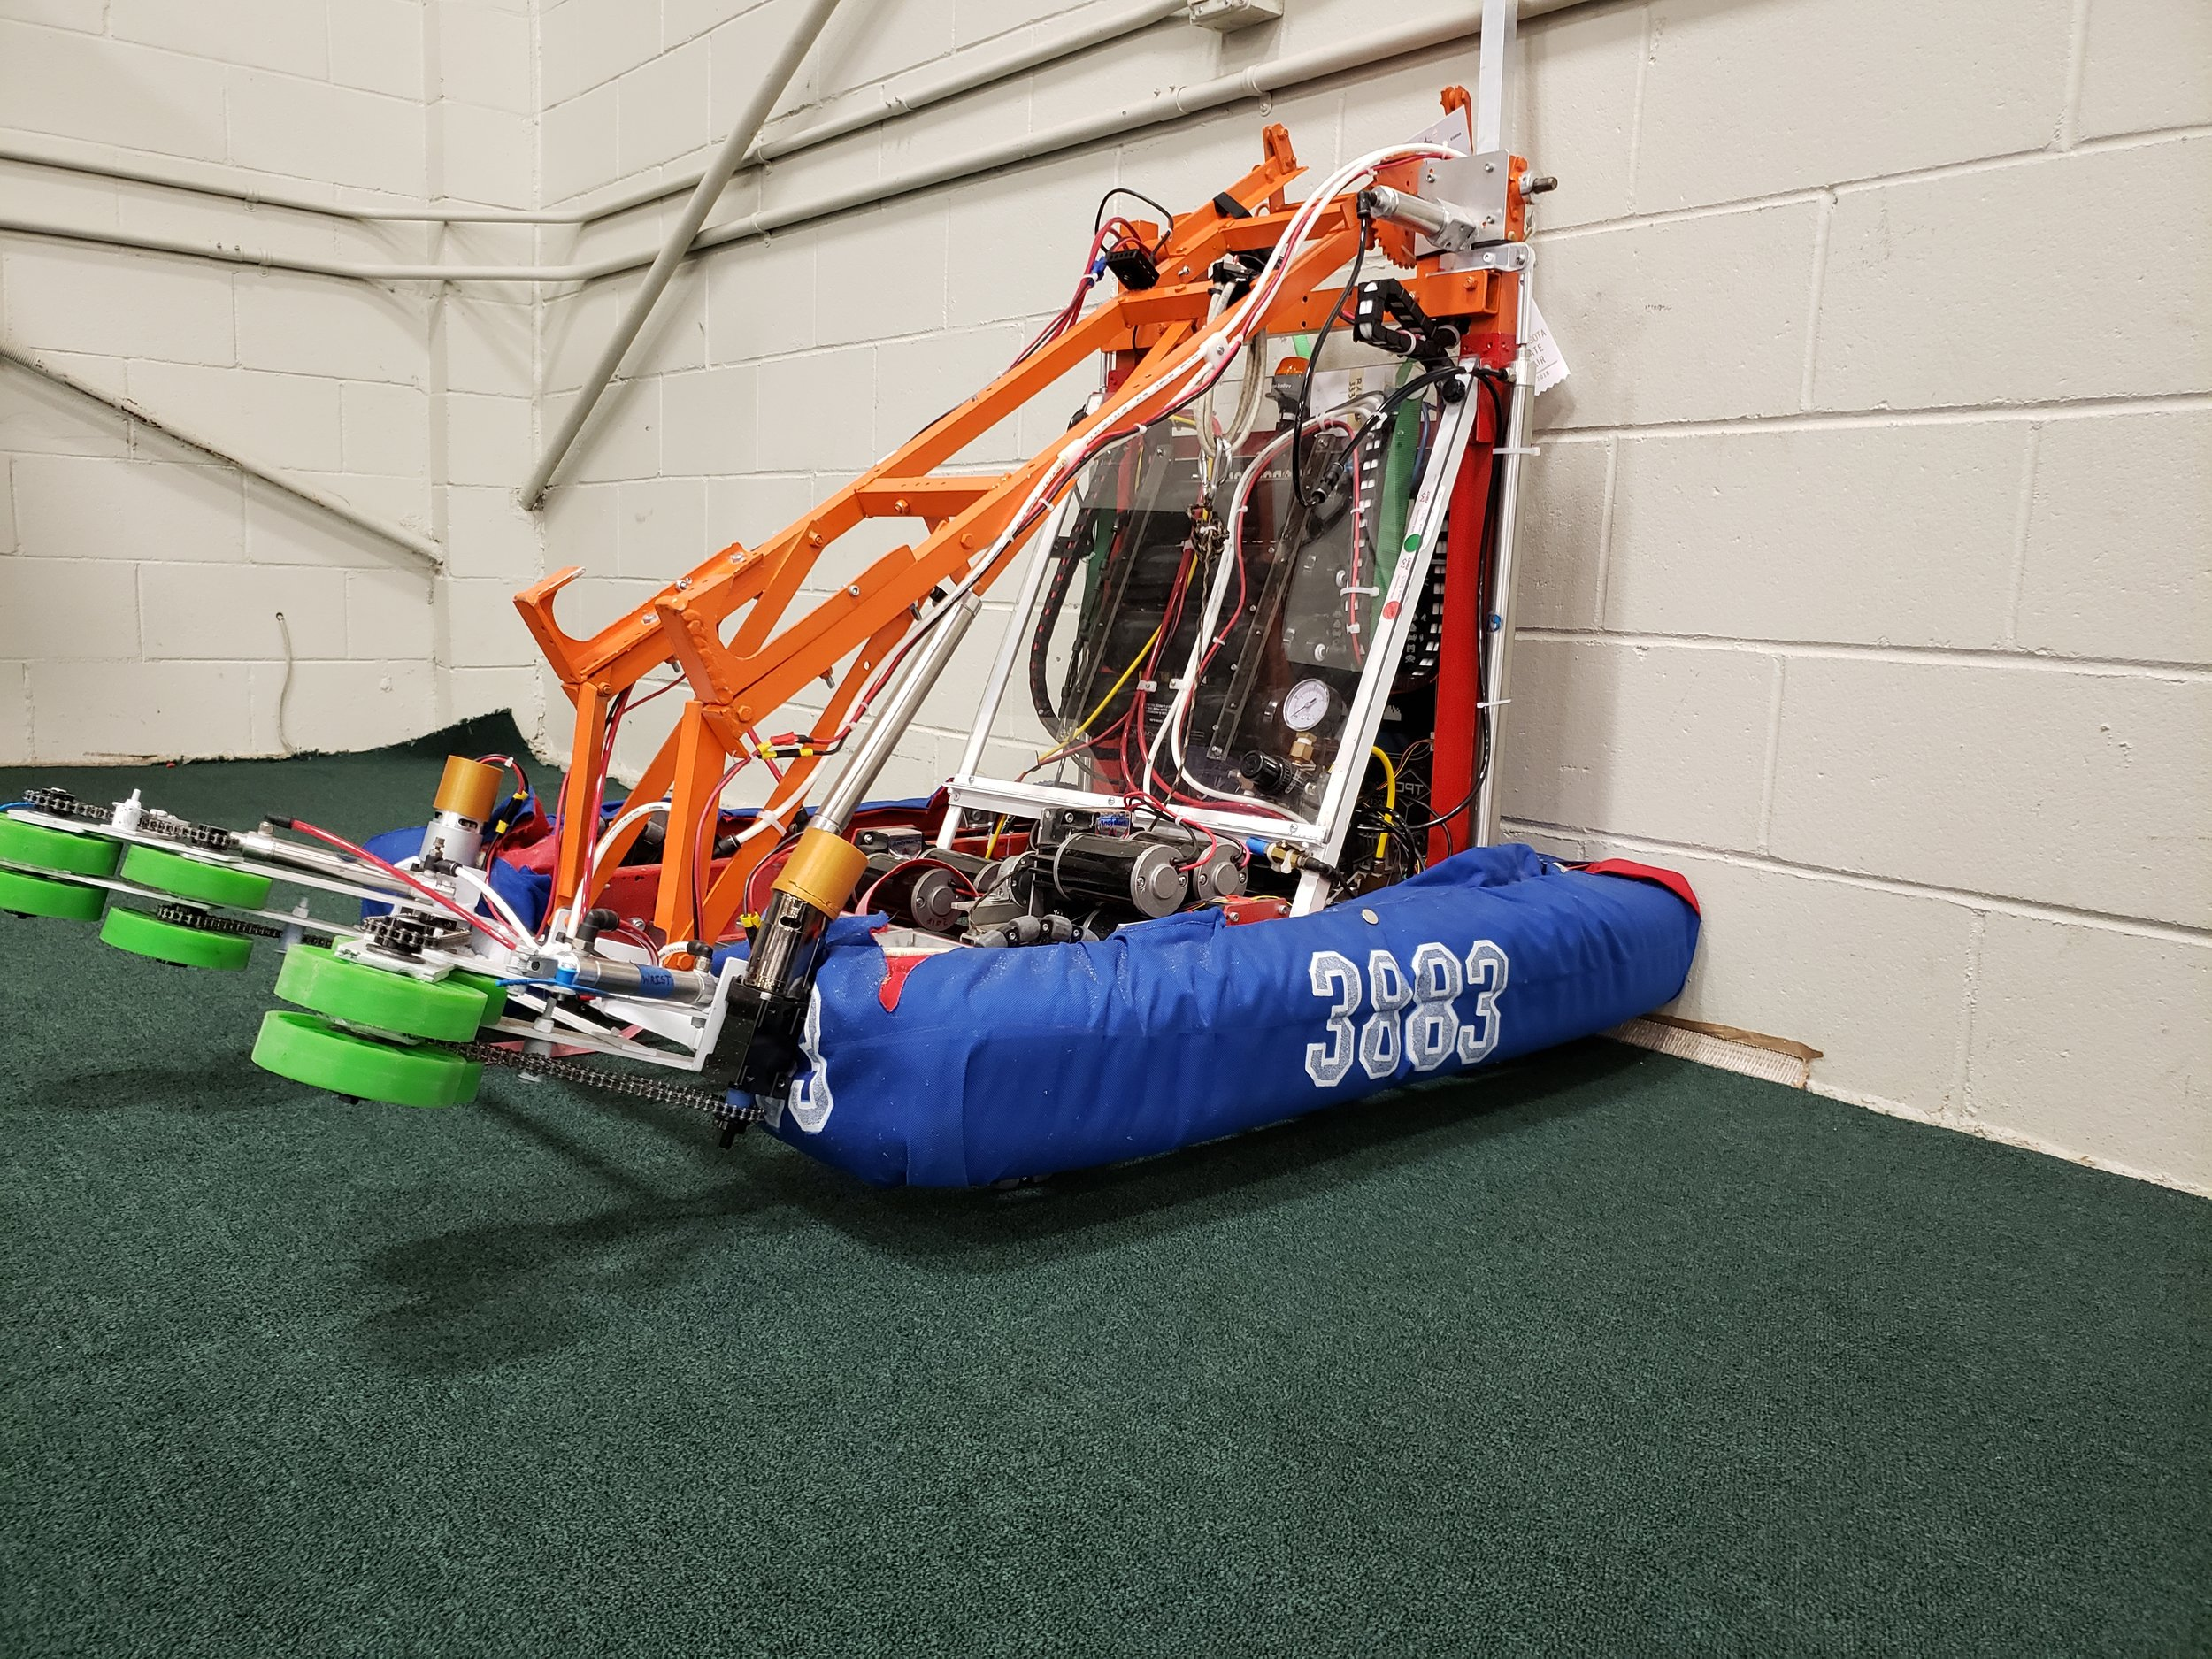 "2018 - Tails - This was our robot made for the 2018 season. Named for the sonic character which fit the year's game. Our robot was designed to launch power cubes and lift itself from the platform.This robot was designed for the 2018 season known as, ""FIRST Power Up!"". The objective was to gain points by capturing switches and a scale through power cubes. These power cubes could also be put into the vault to earn certain power ups. The end game objective was to climb the scale above a certain point.Game Animation"